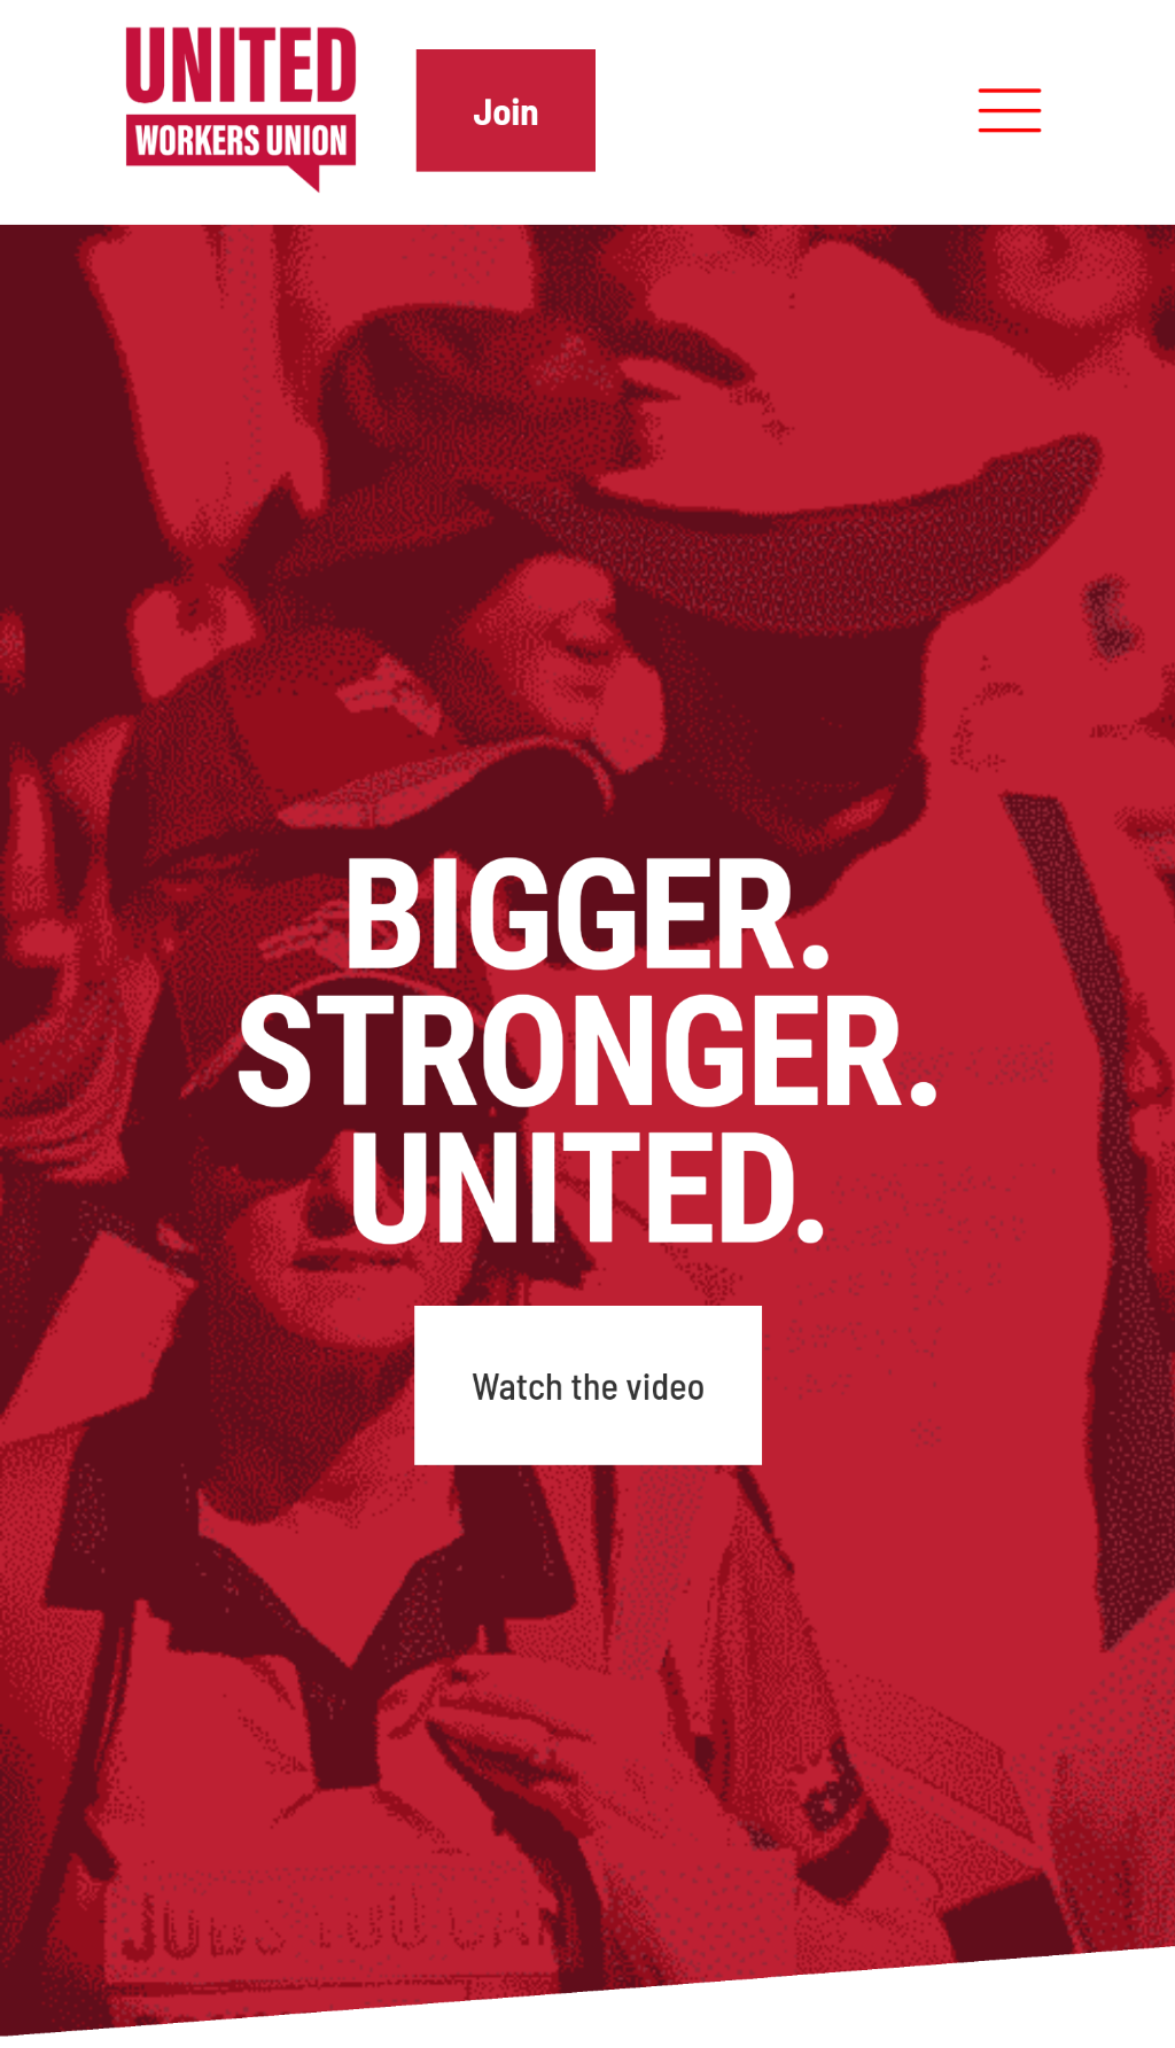 United Workers Union website